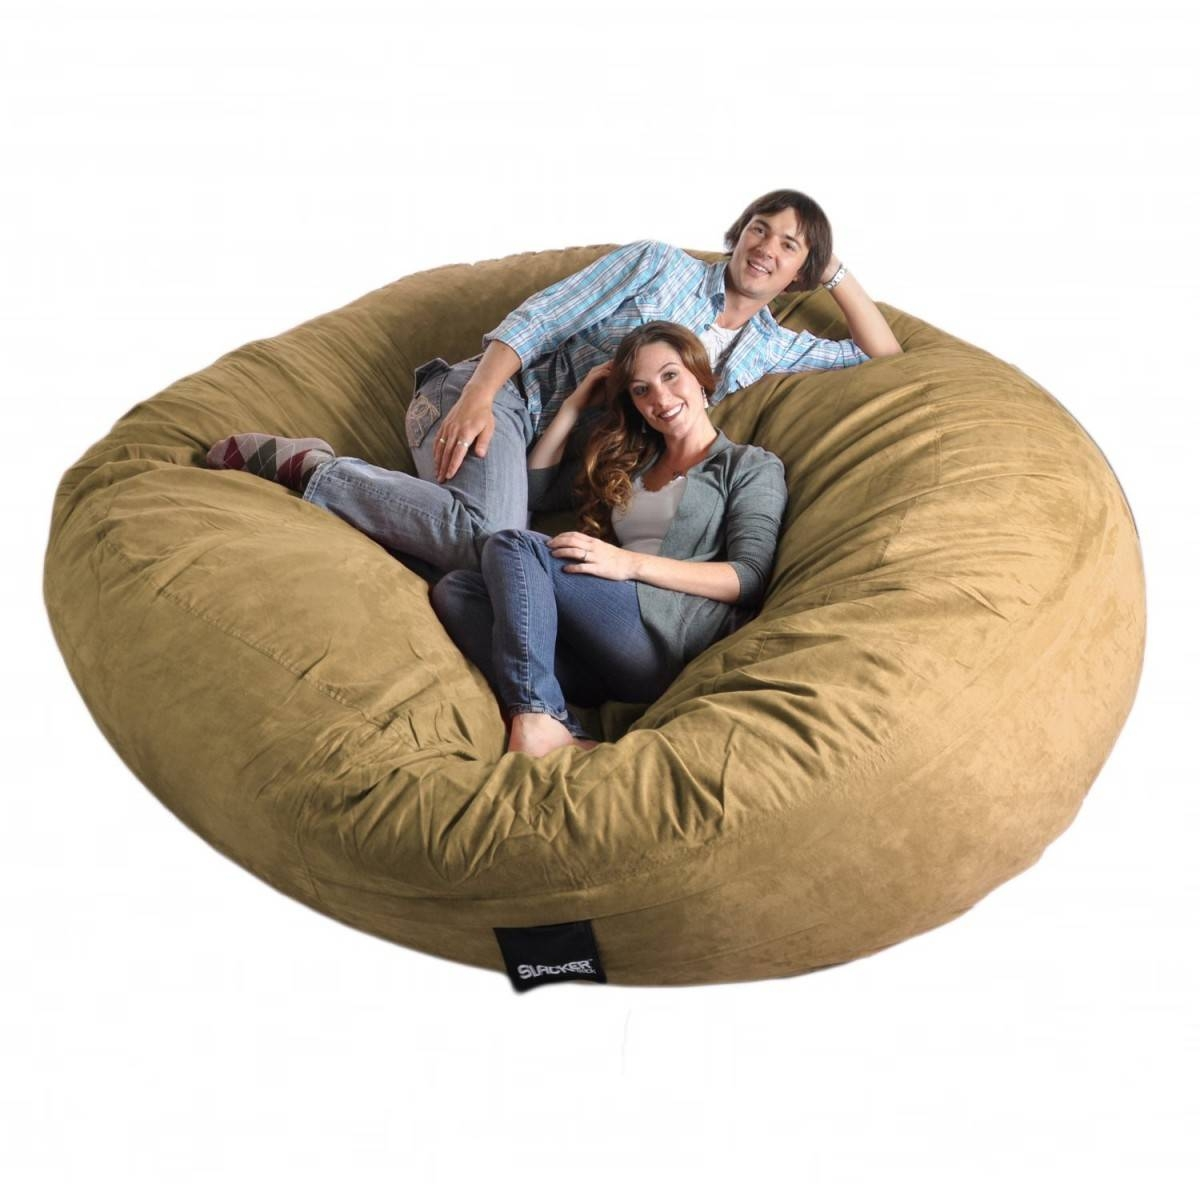 Bean Bag Chairs For Adults Extra Large : Furniture Decor Trend pertaining to Giant Bean Bag Chairs (Image 1 of 15)